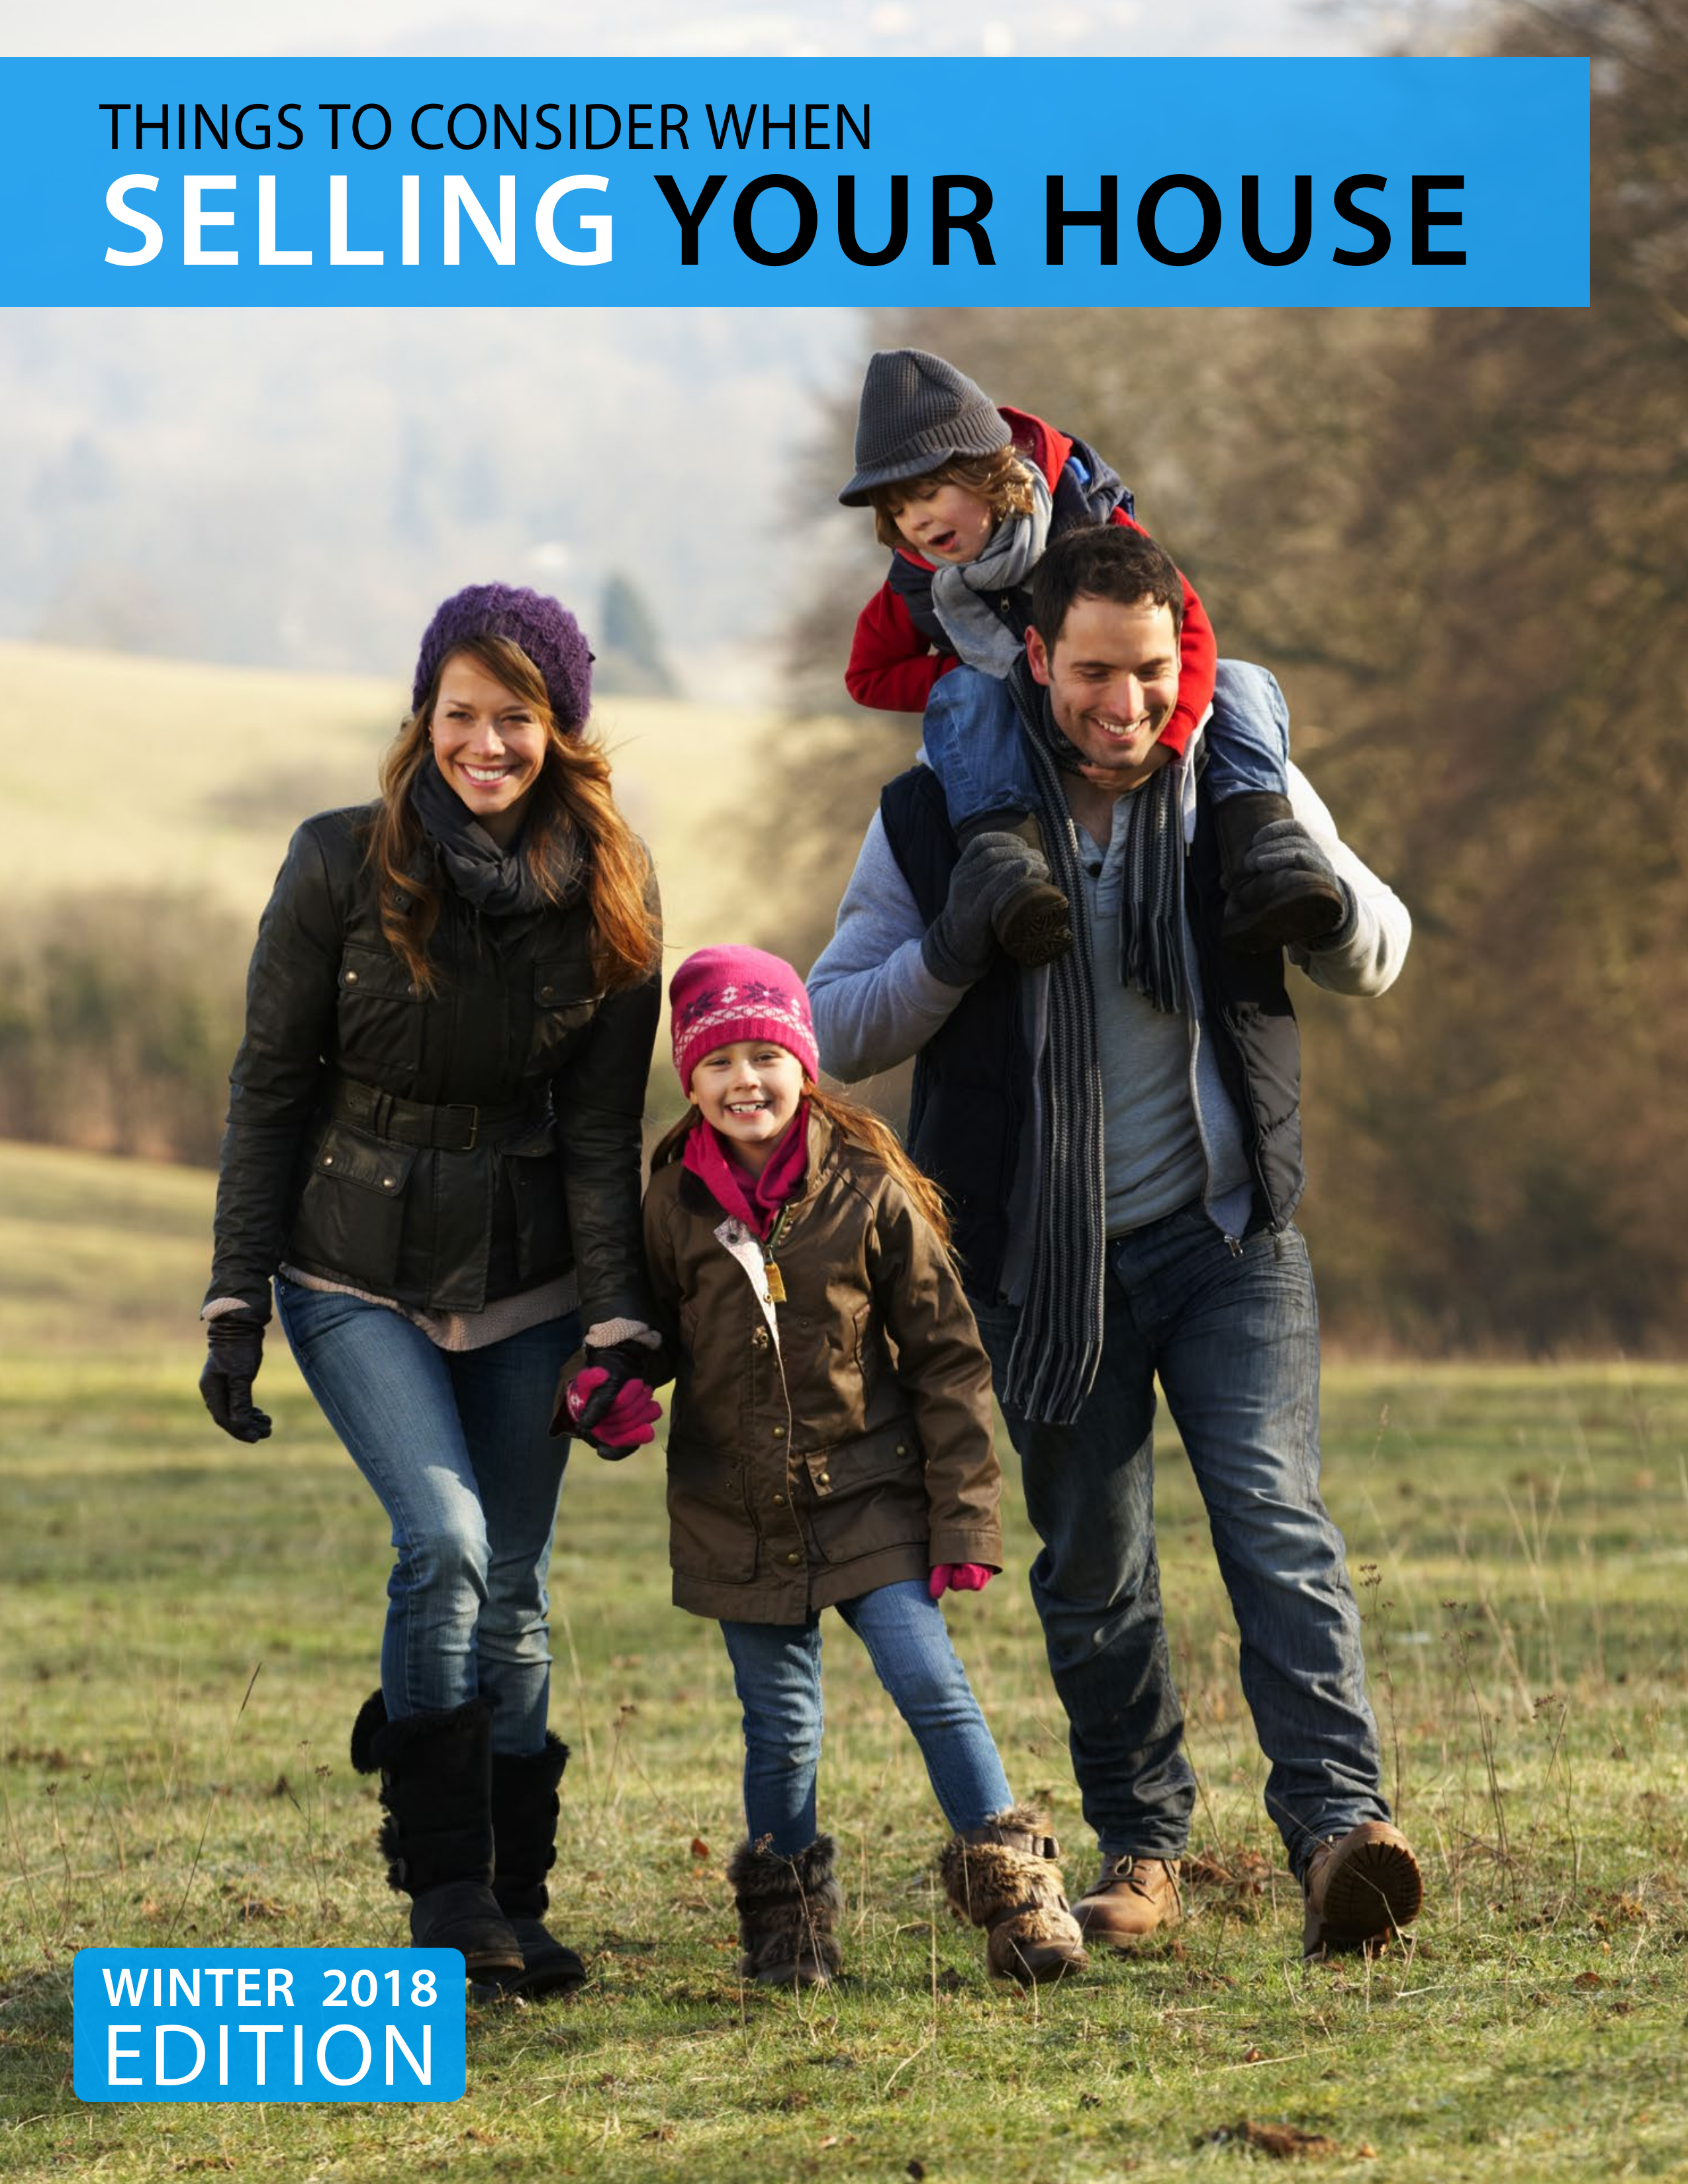 Selling your house this winter guide